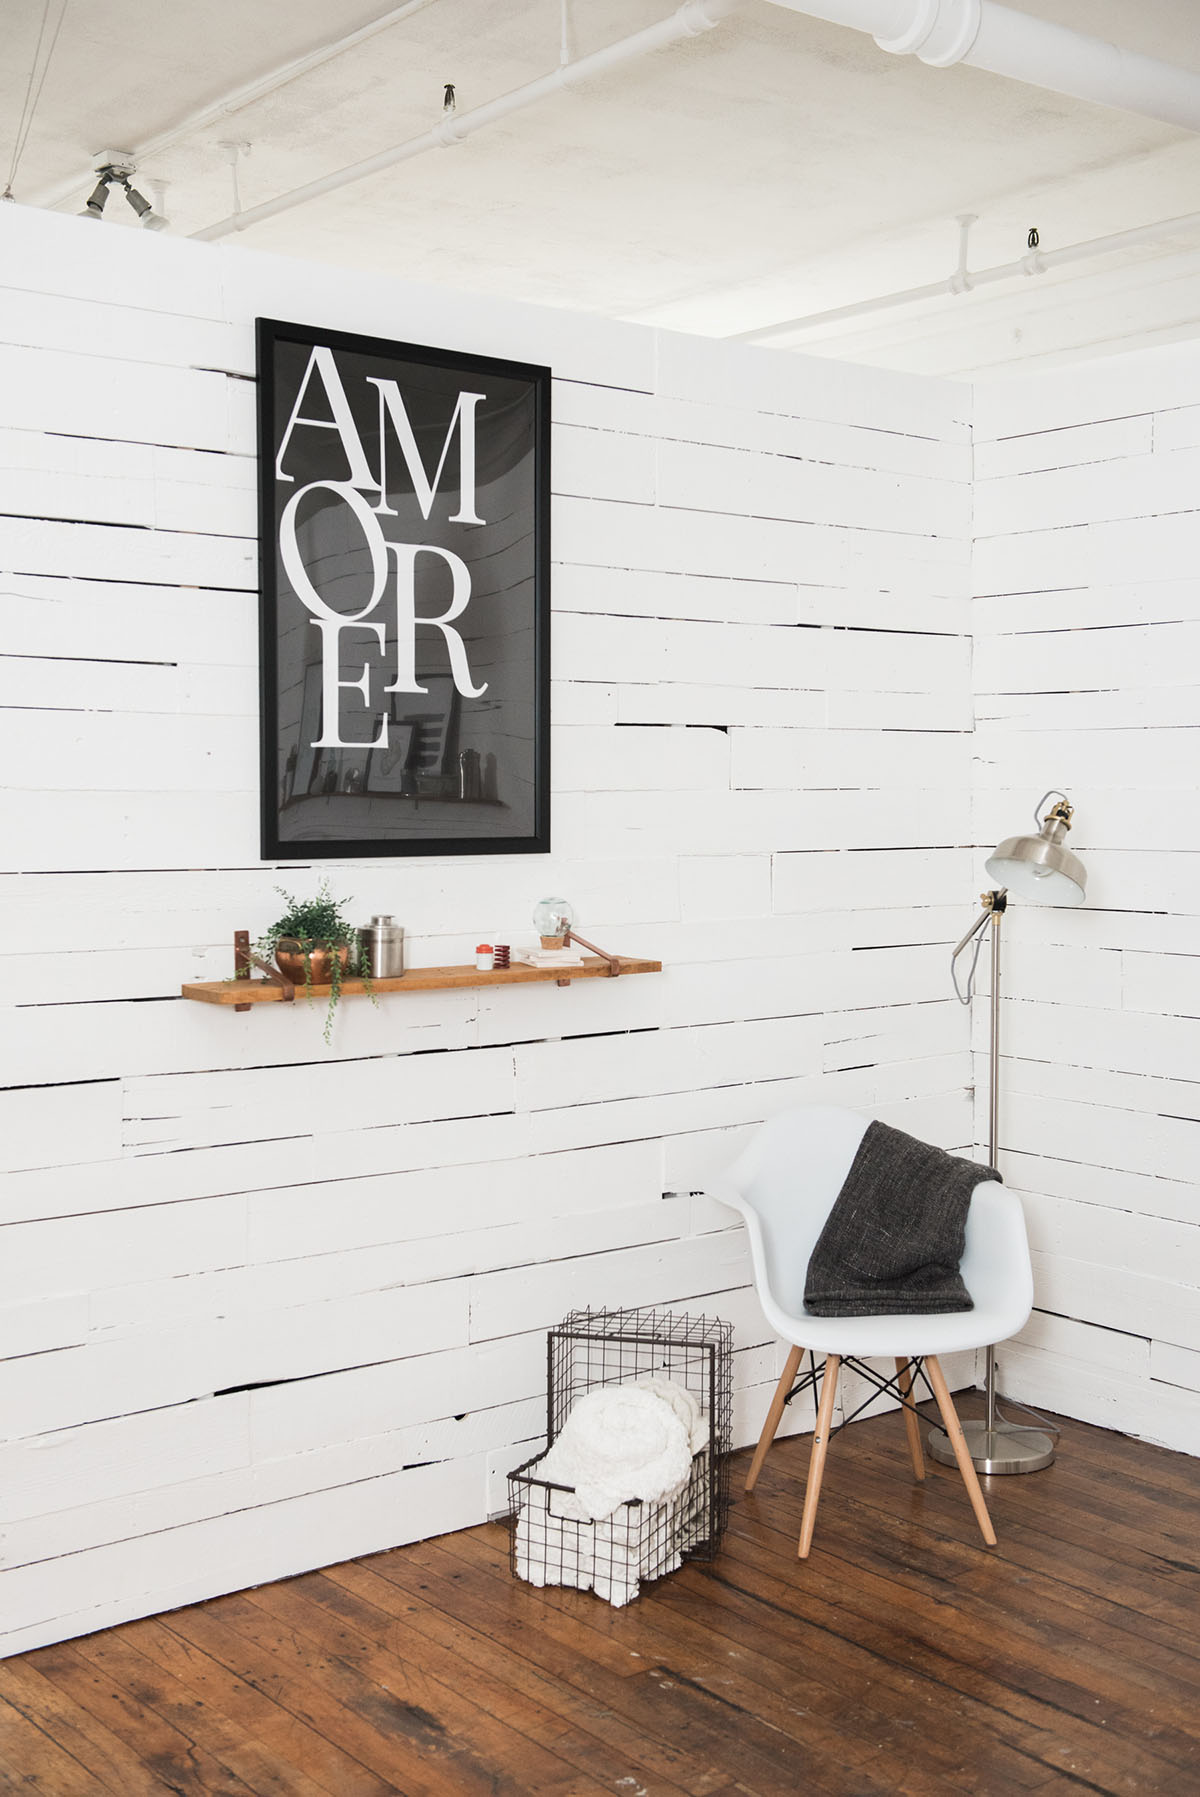 Amore Wall Art Print at Loft 505 in Chicago